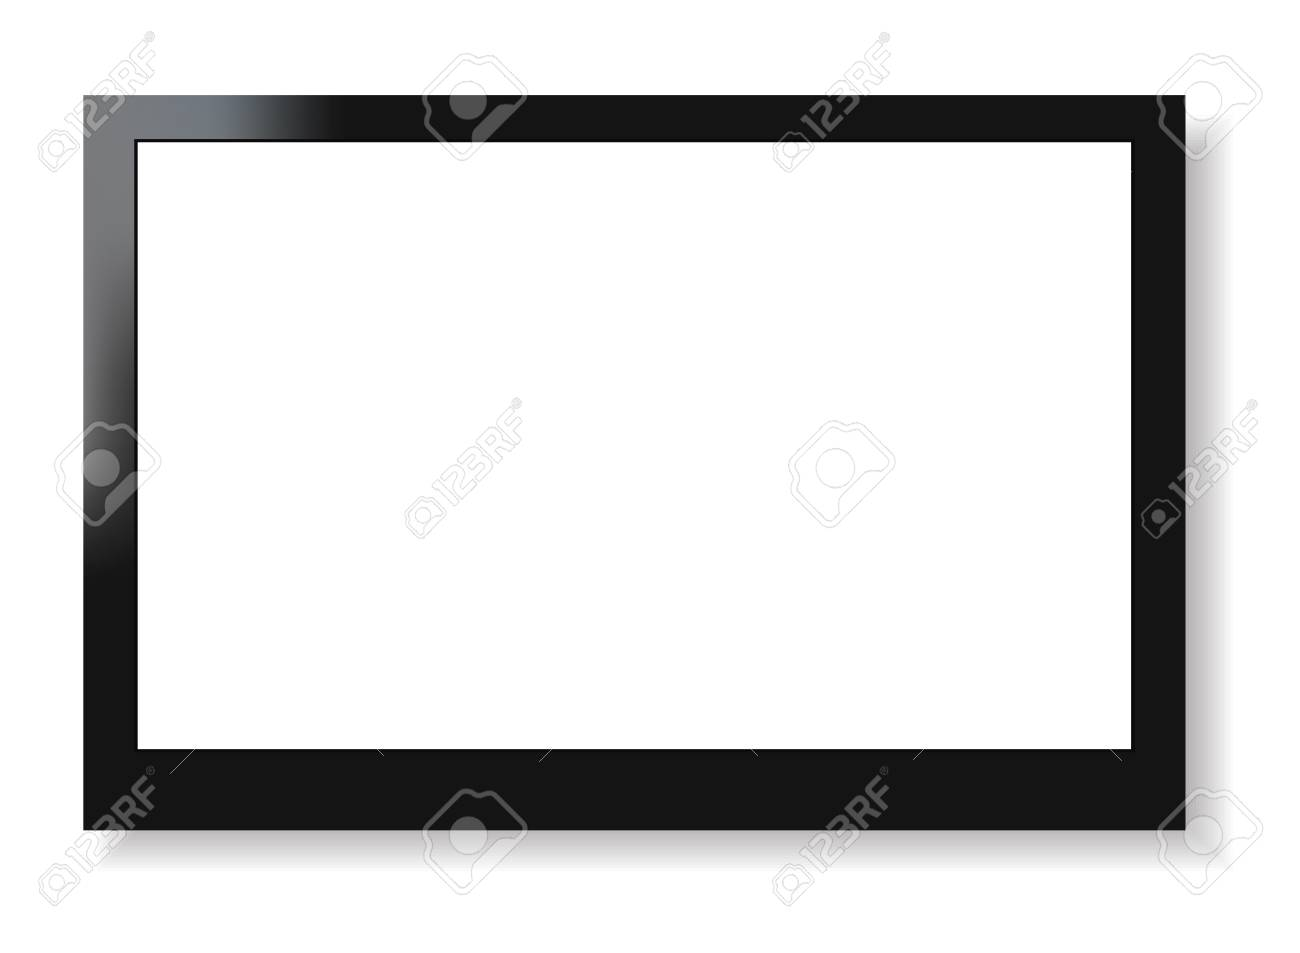 LCD screen television Stock Vector - 19973083